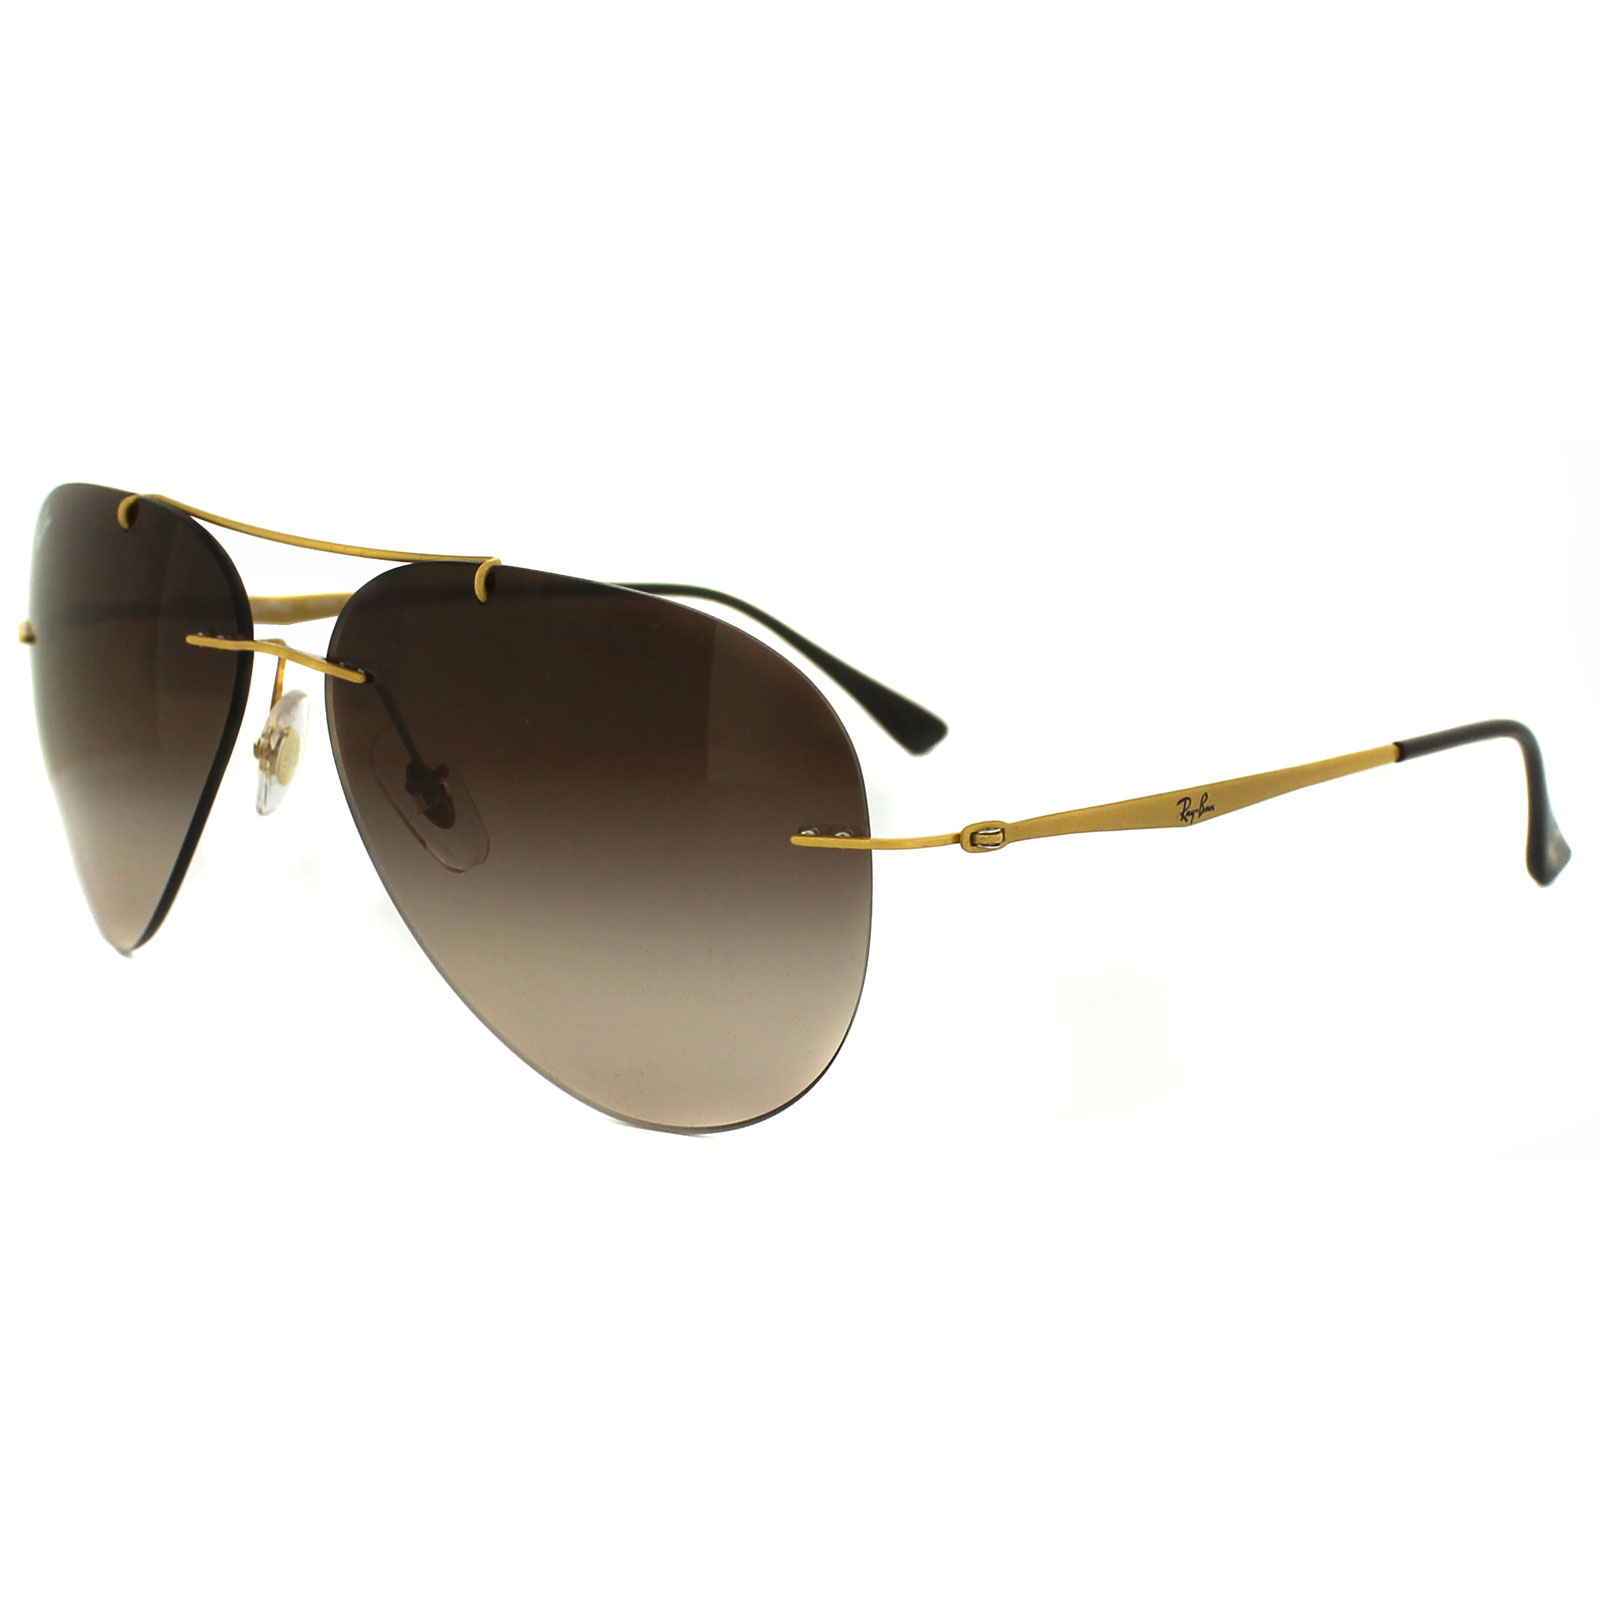 006a3e54f Cheap Ray-Ban Aviator Light Ray 8055 Sunglasses - Discounted Sunglasses